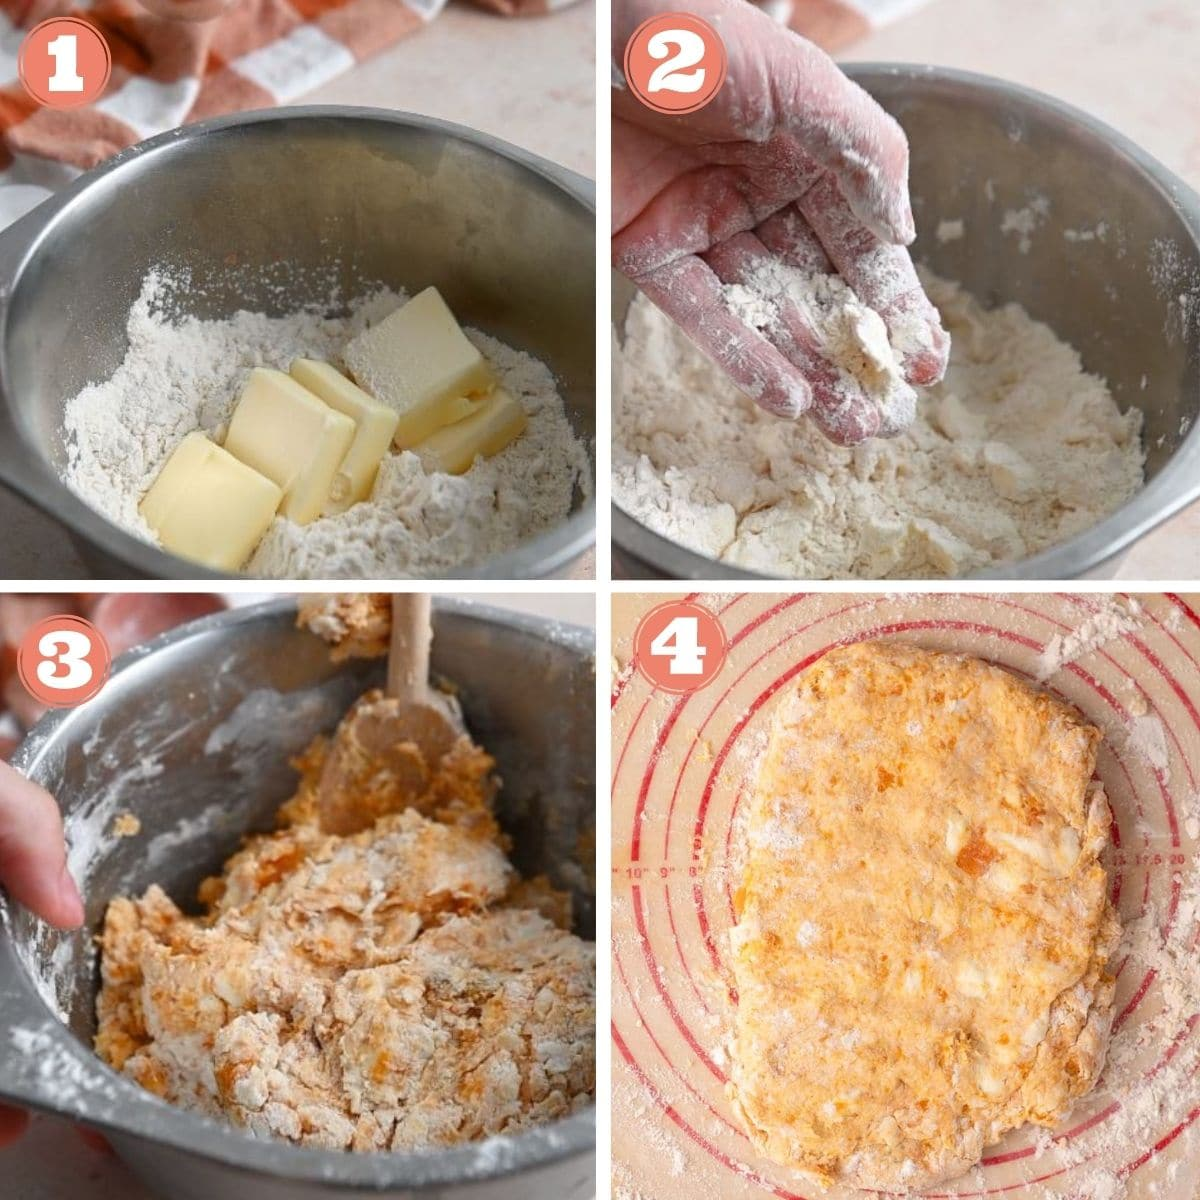 Steps 1 through 4 to make biscuits